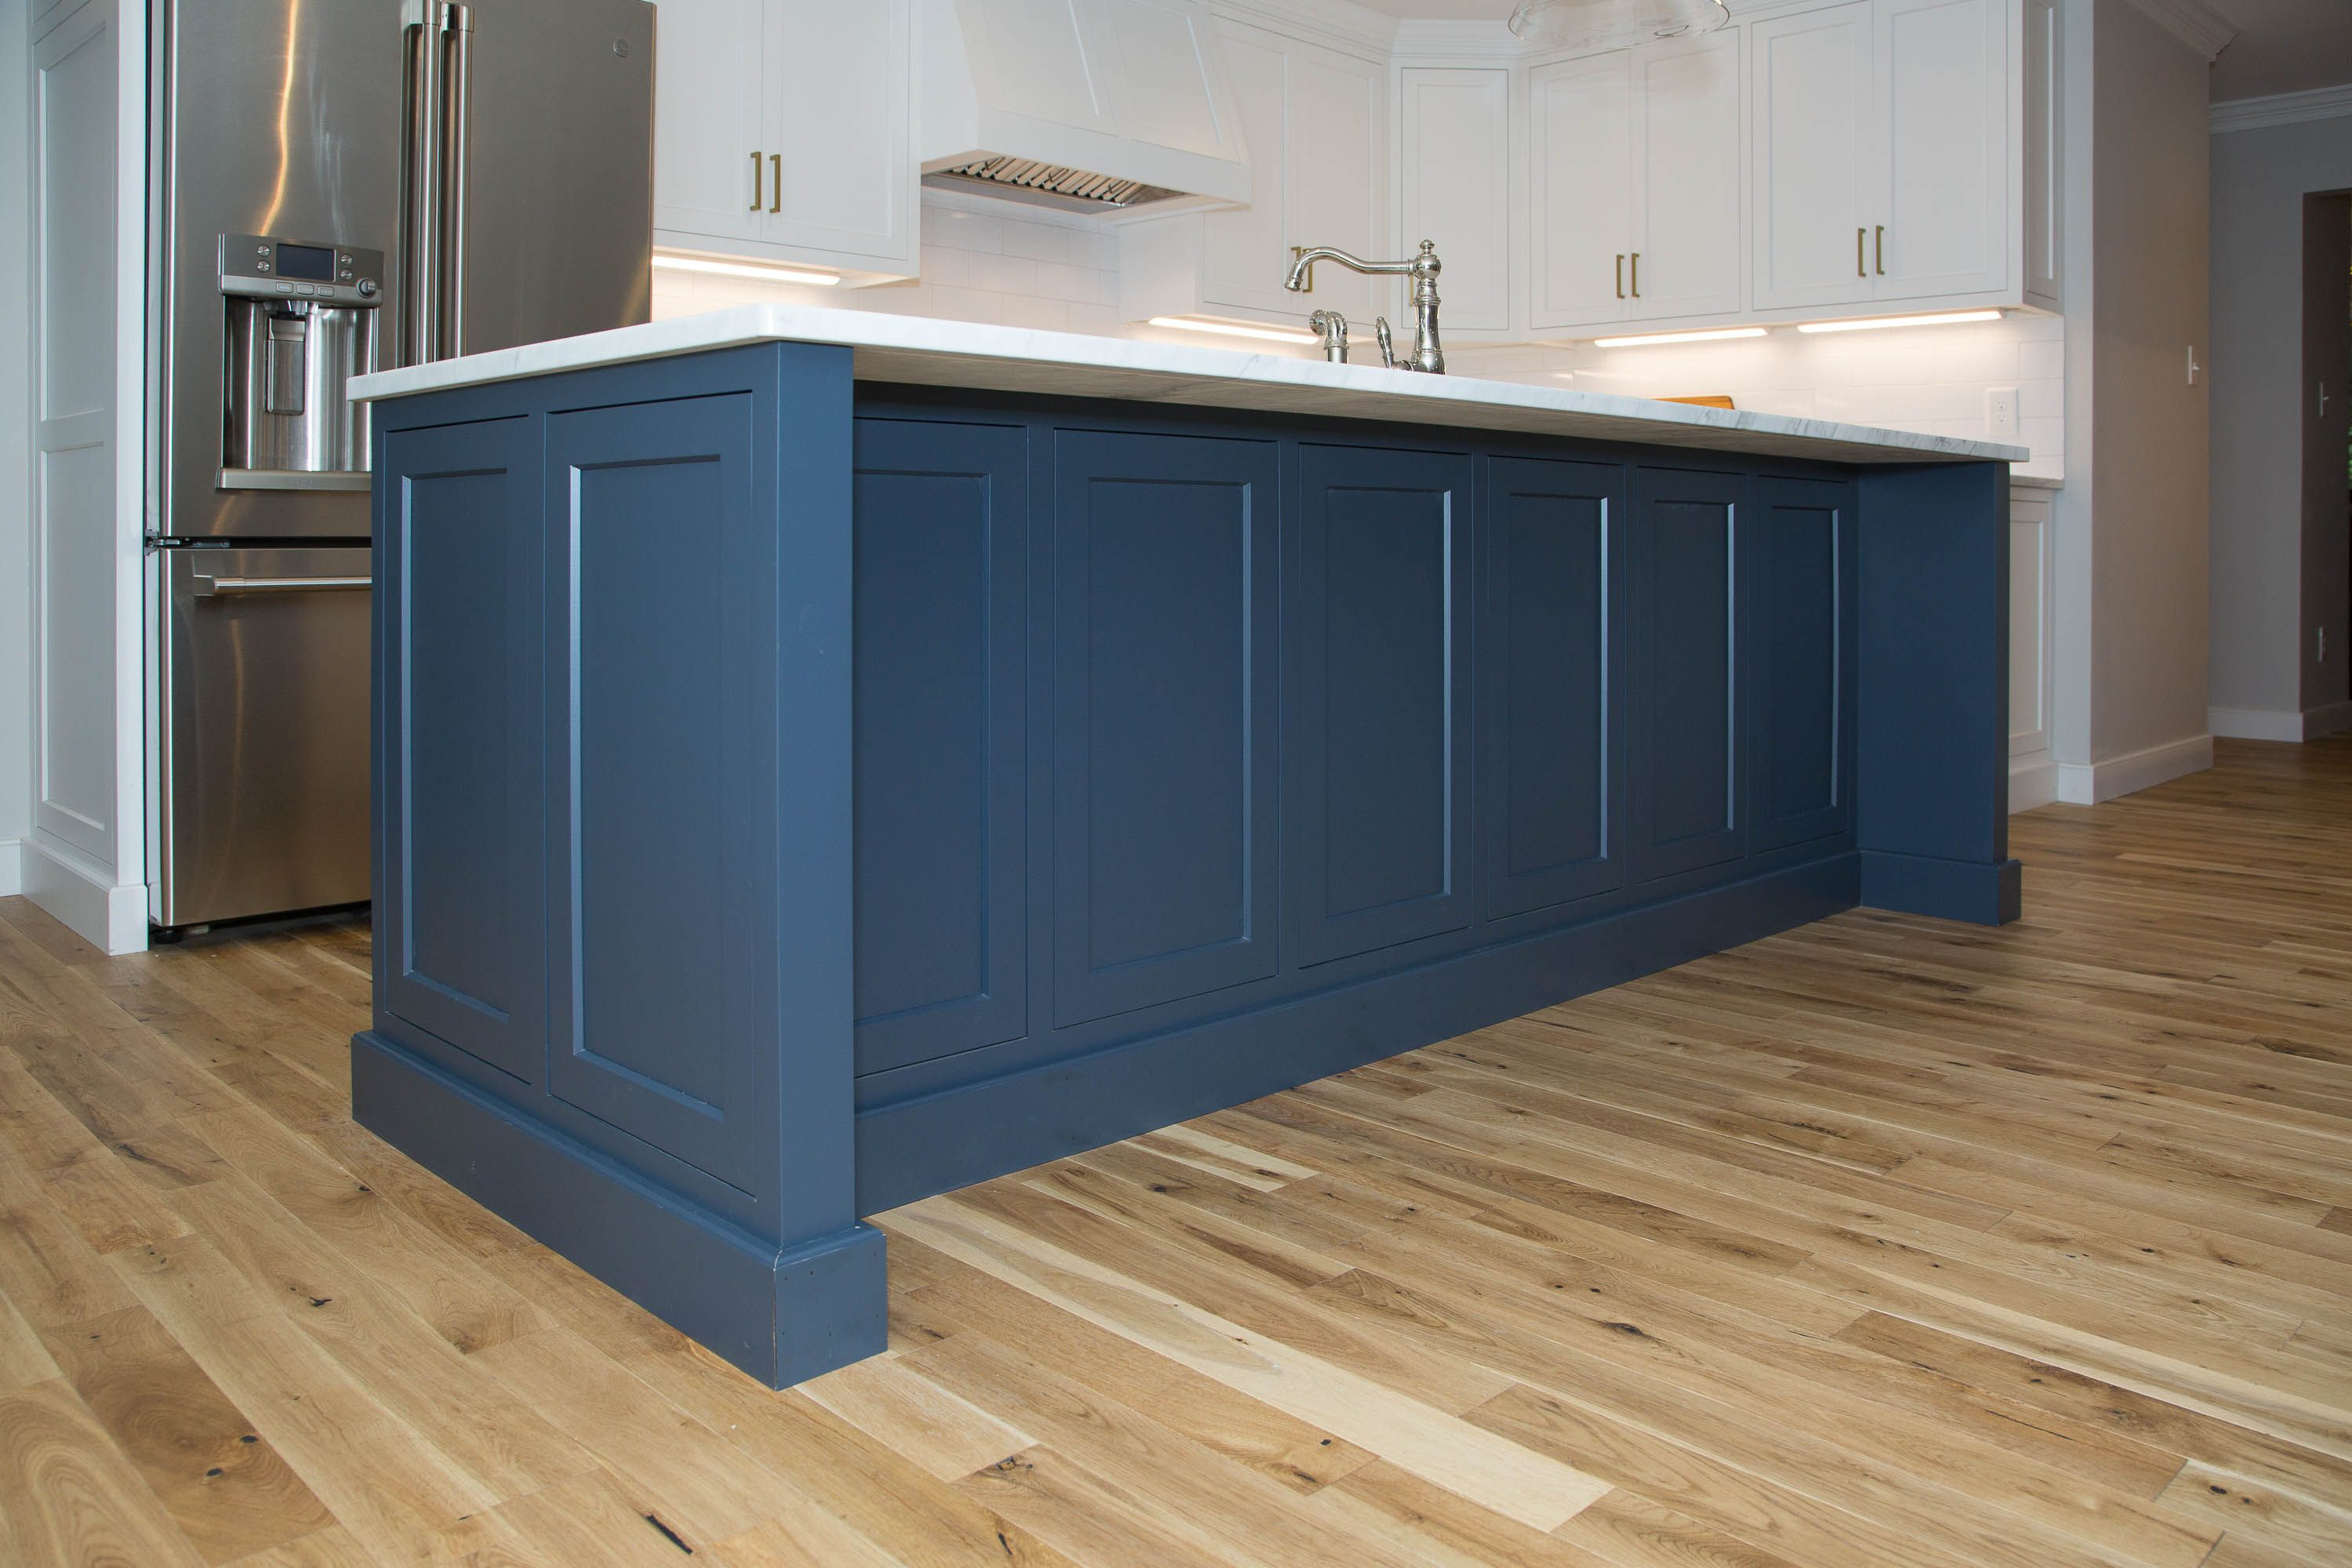 Navy Blue Island With White Kitchen Cabinetry Kitchen Cabinetry White Kitchen Home Decor